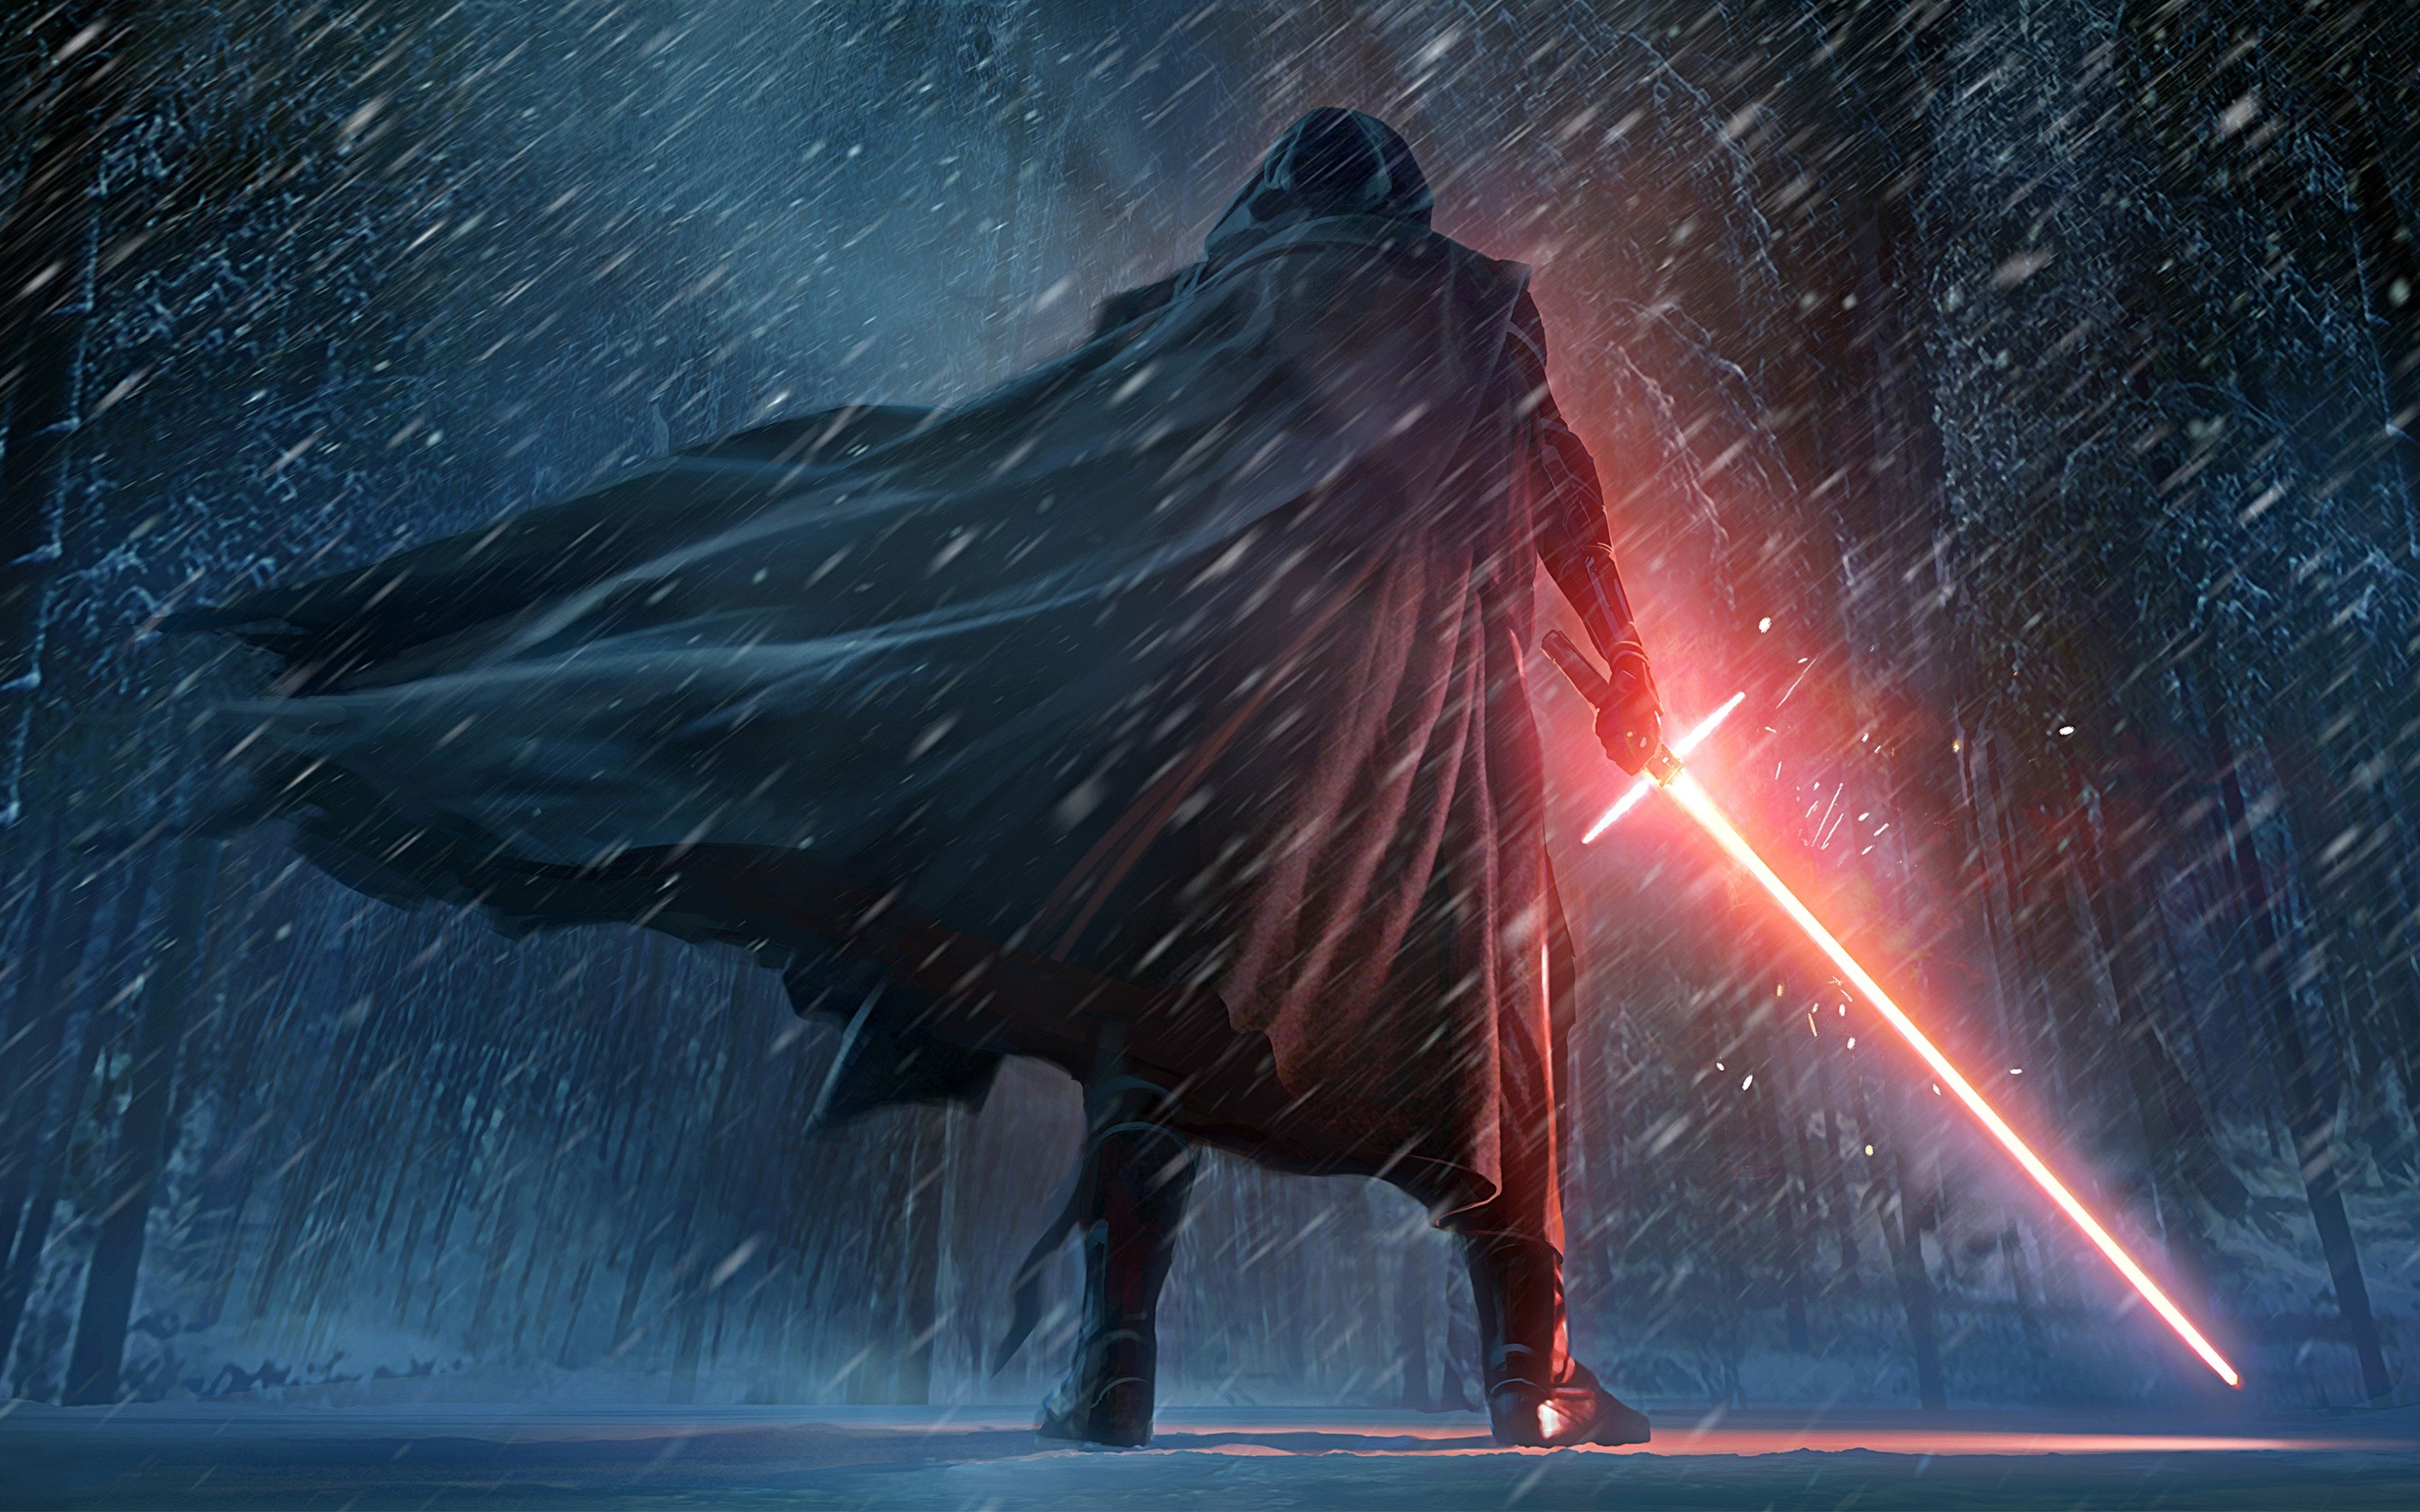 Wallpaper Artwork by Kylo Ren in Star Wars